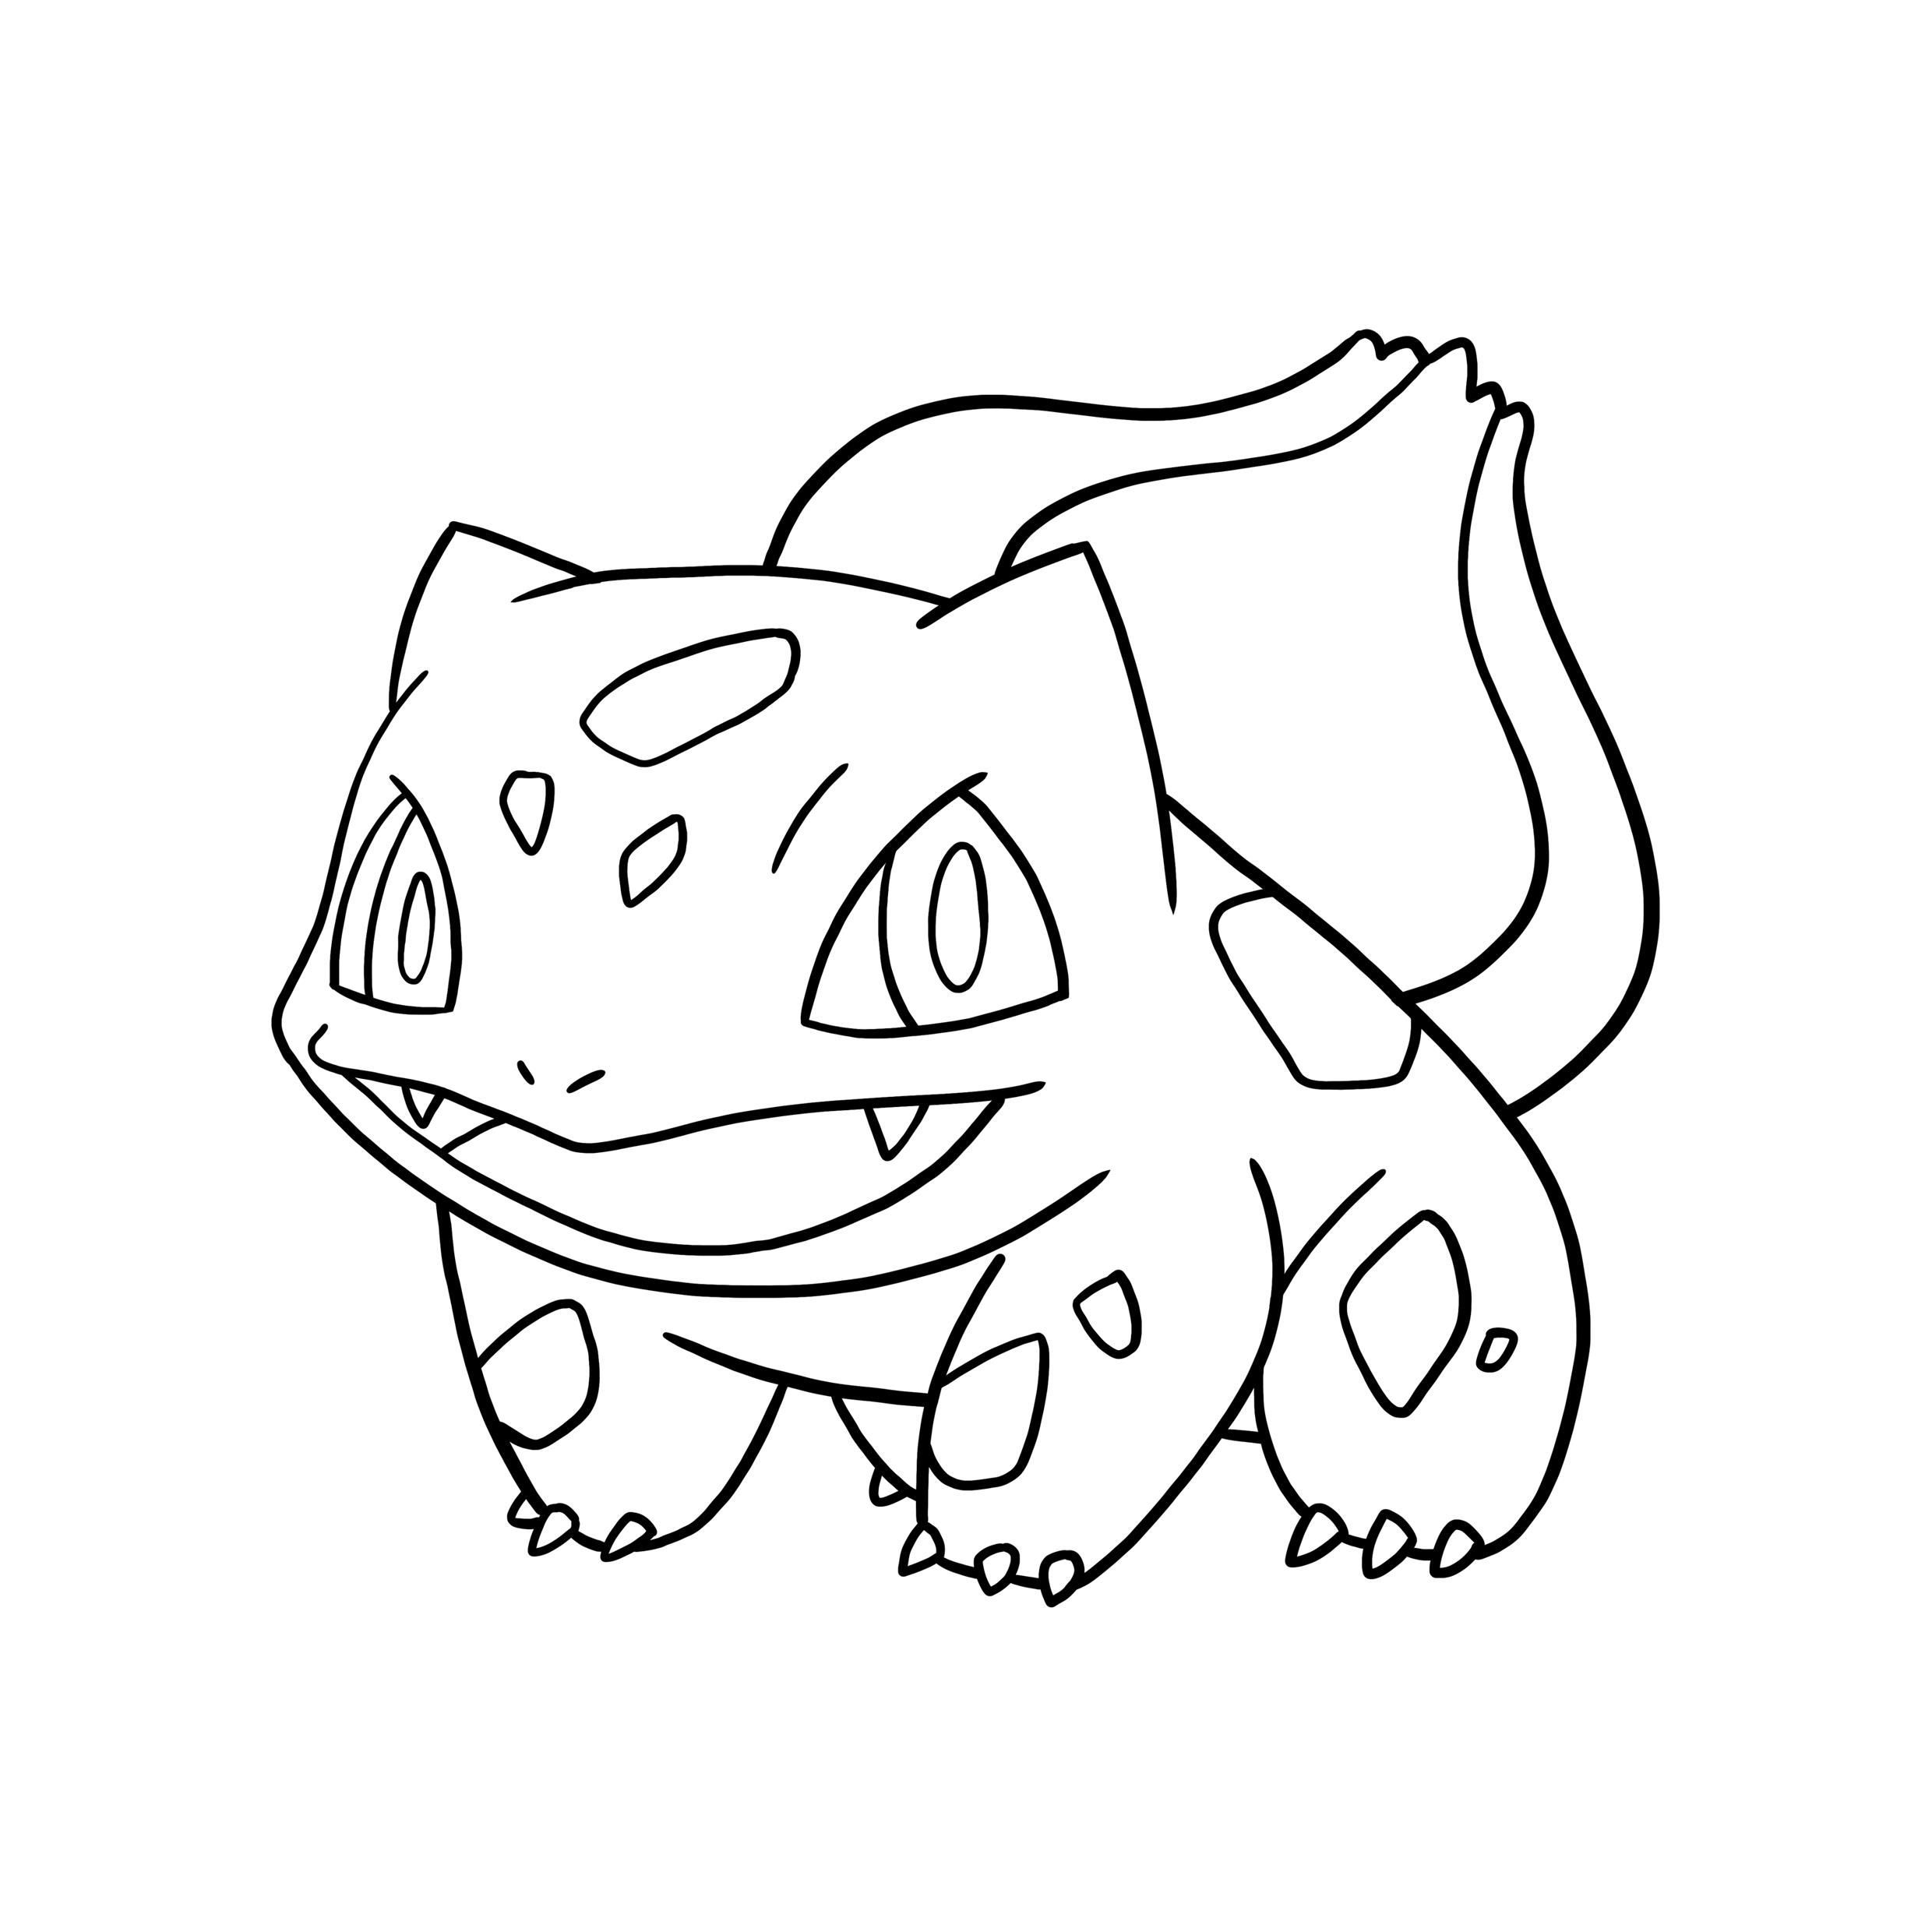 Pokemon Coloring Pages Pokemon Coloring Pokemon Bulbasaur